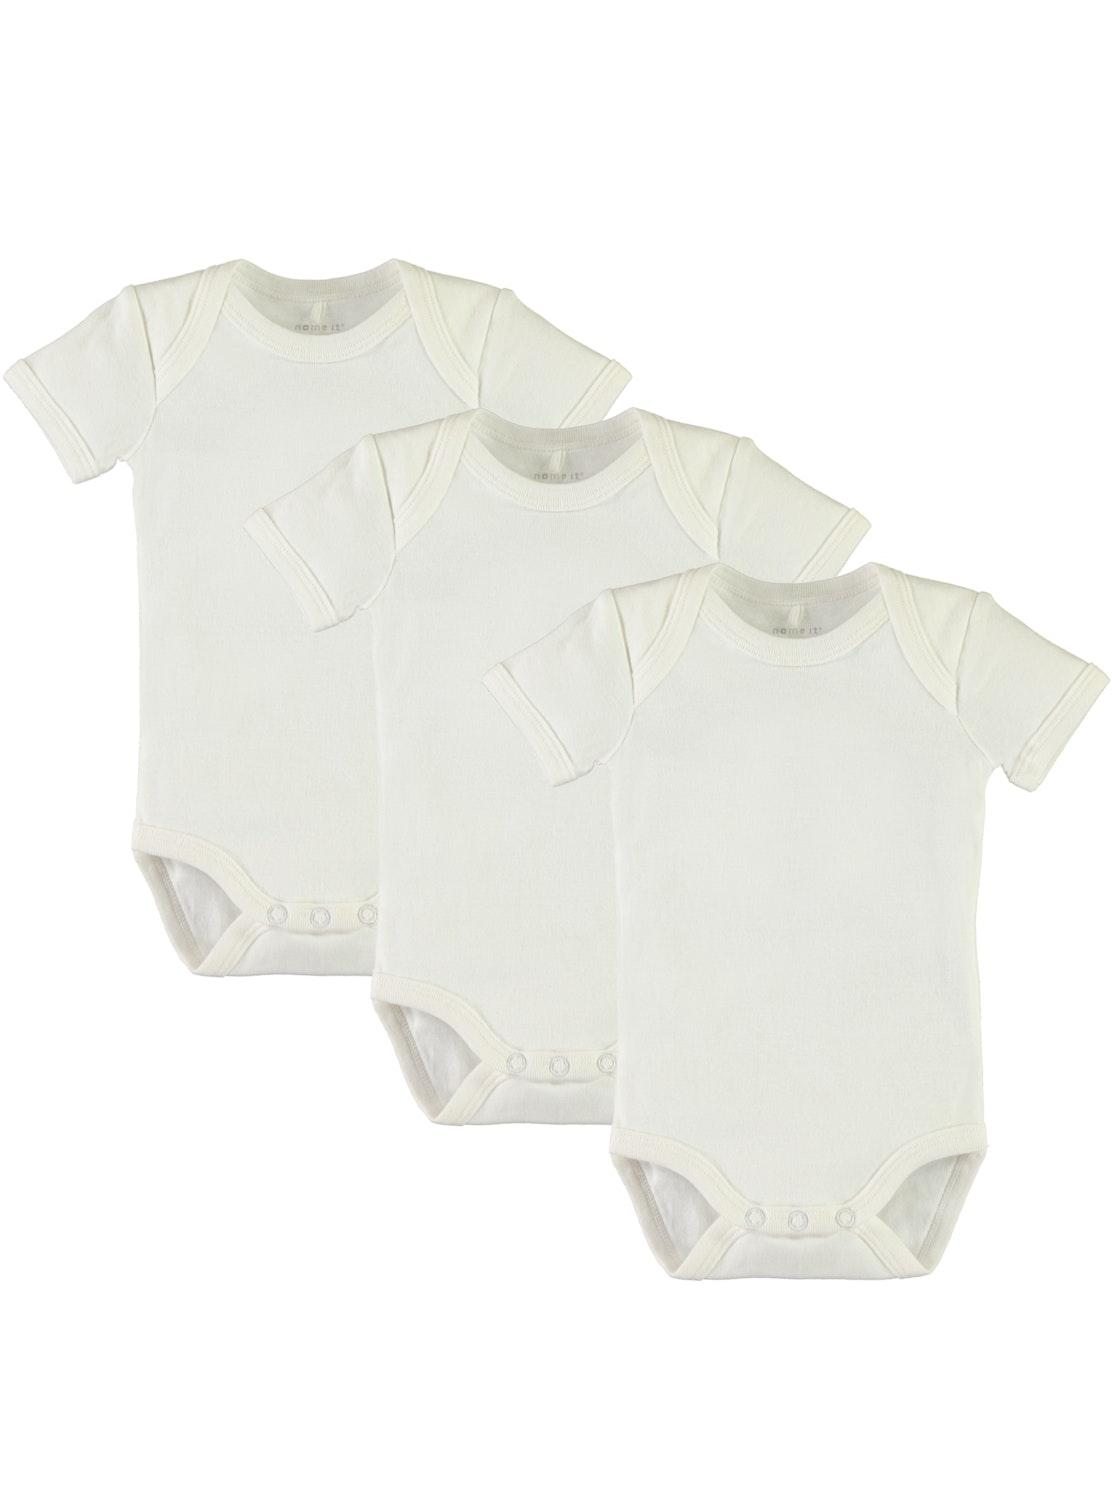 NBNBODY 3P SS SOLID WHITE NOOS